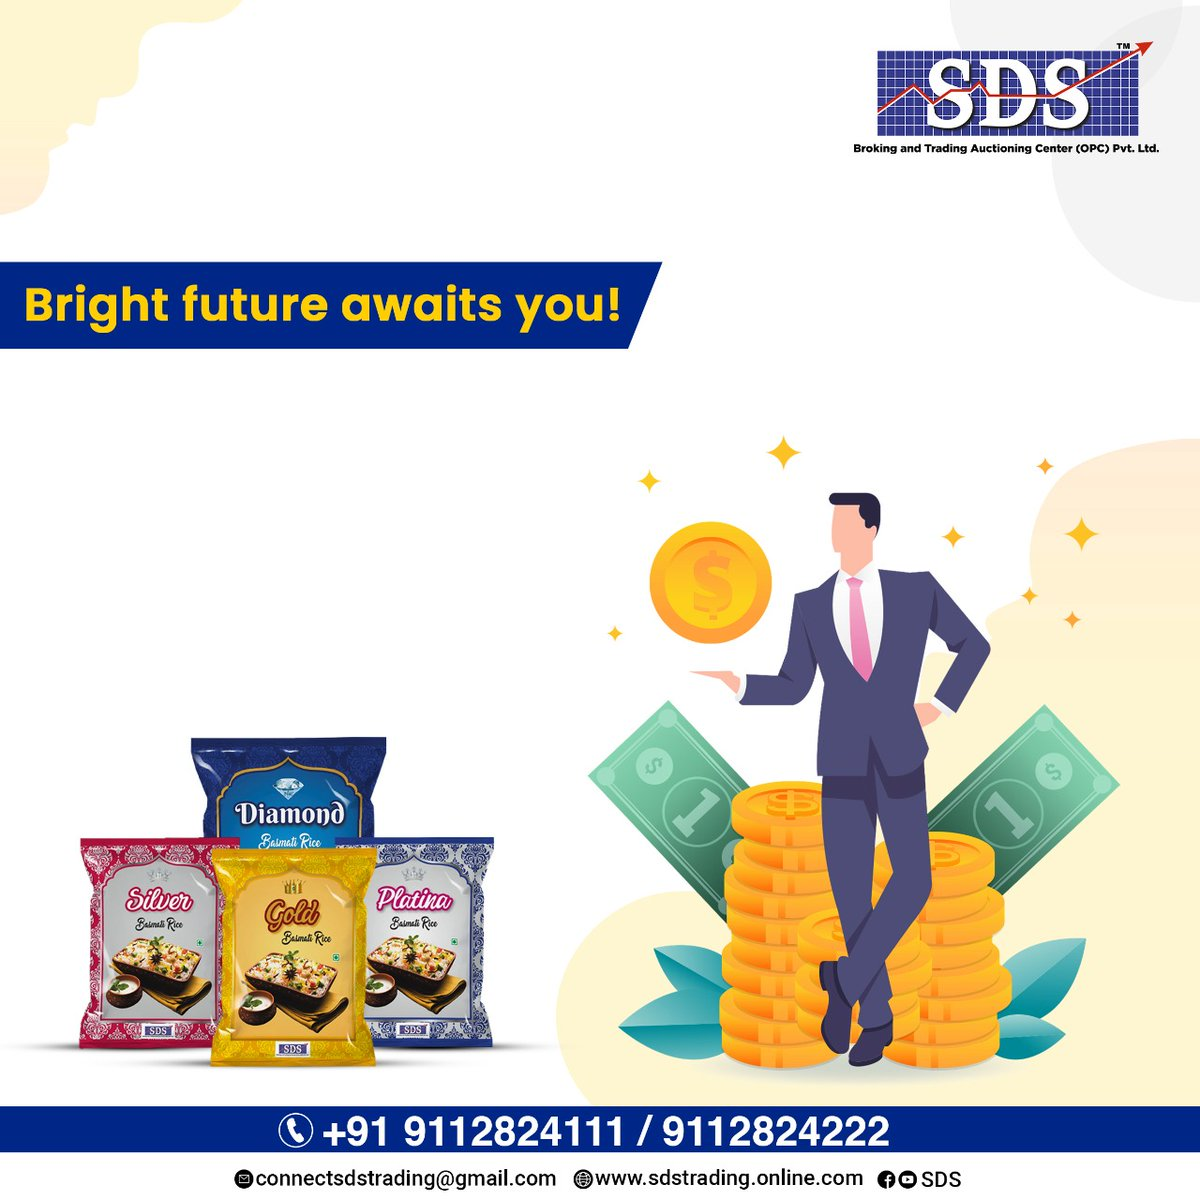 SDS brings you the perfect opportunity to overcome your financial problems. You can trade online with SDS and gain profit. #ricetrading #rice #broking #patency #onlinetrading #SDS #traders  #trading #tradingcards https://t.co/OCjYH29RQB